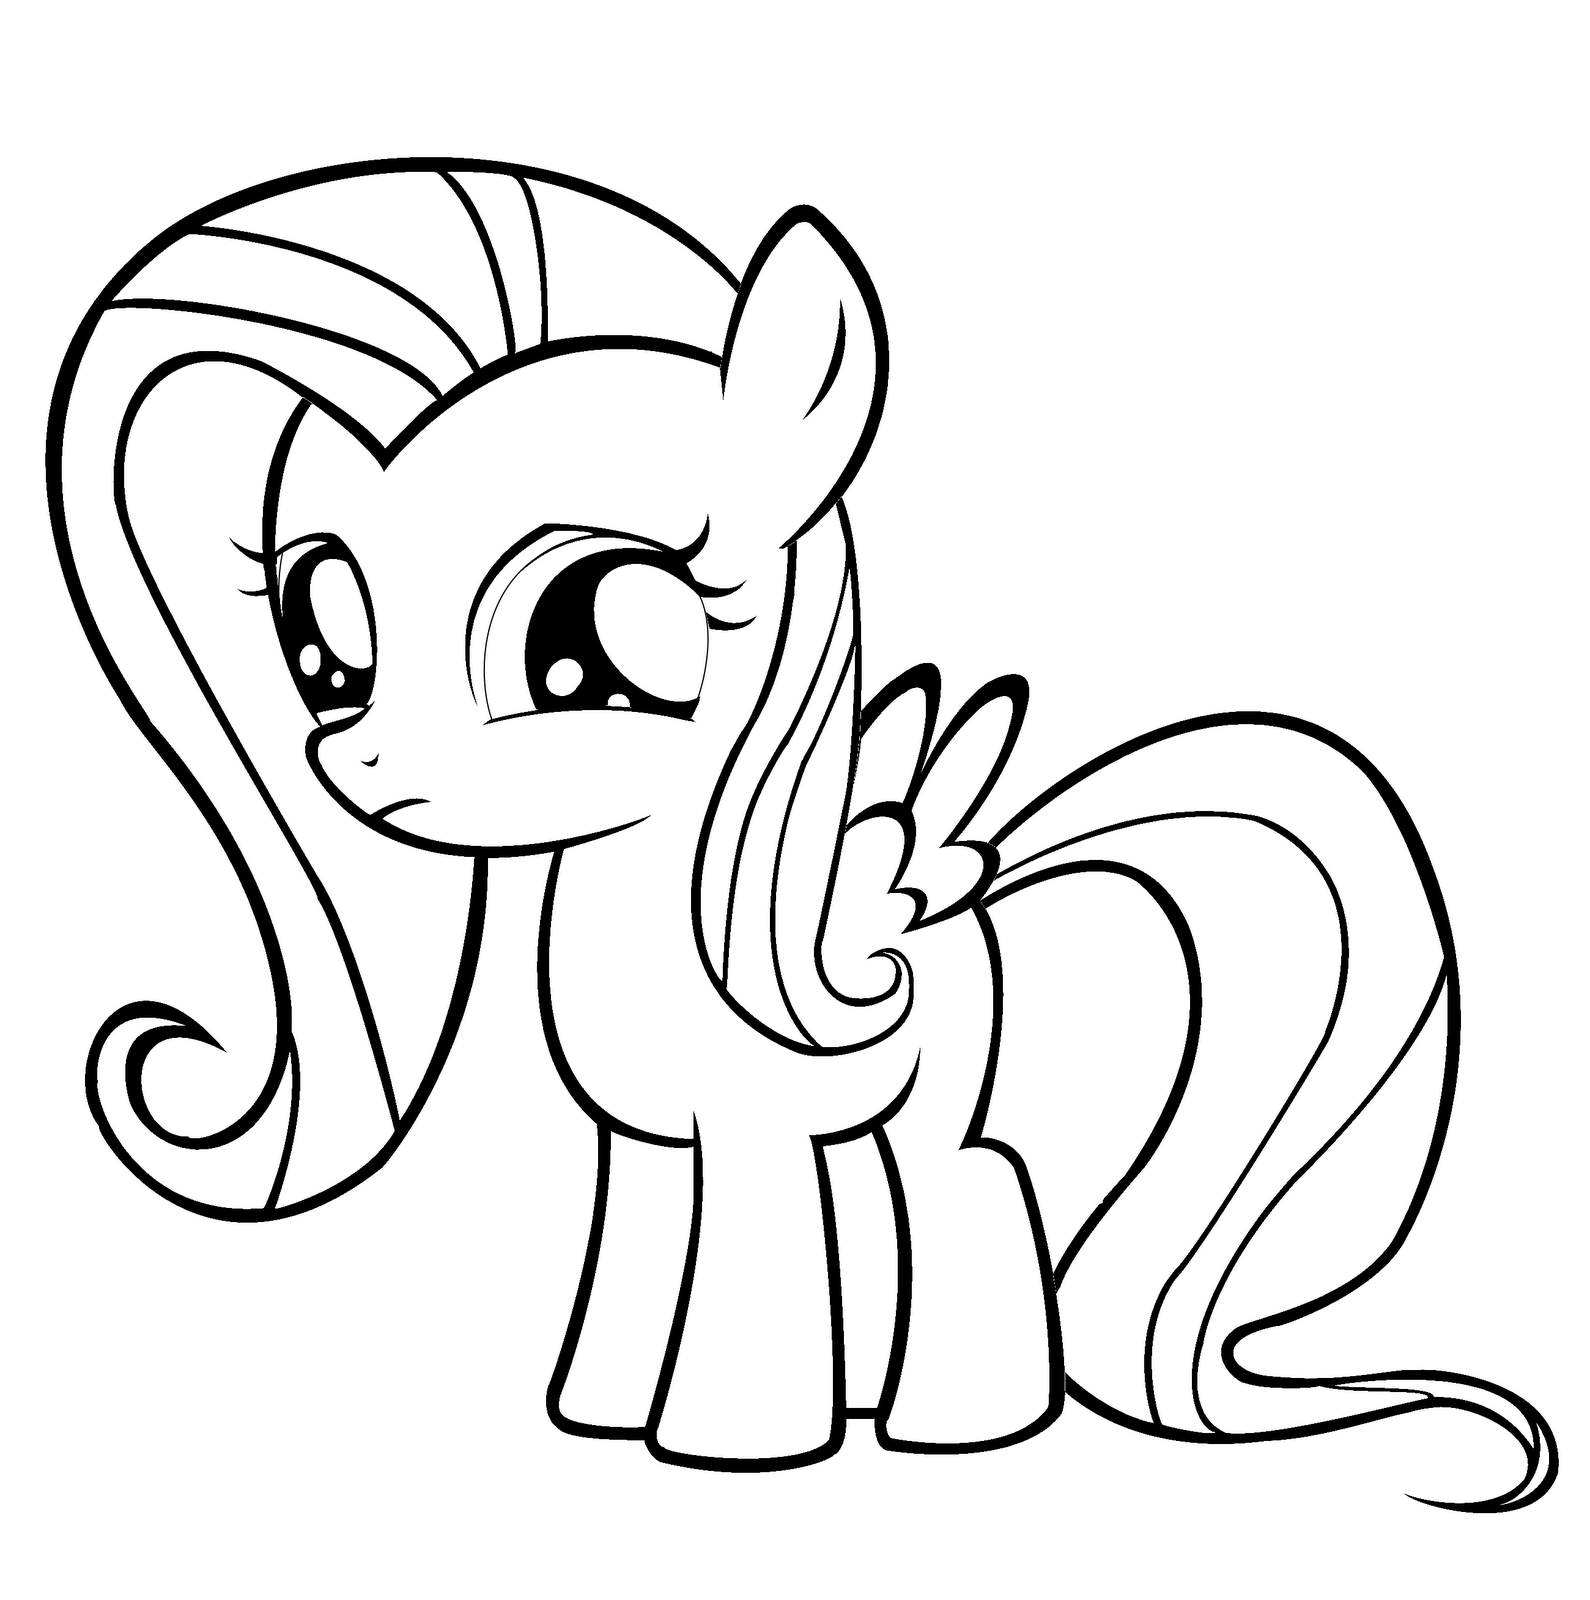 my little pony coloring pages fluttershy fluttershy coloring pages best coloring pages for kids coloring little pony fluttershy pages my